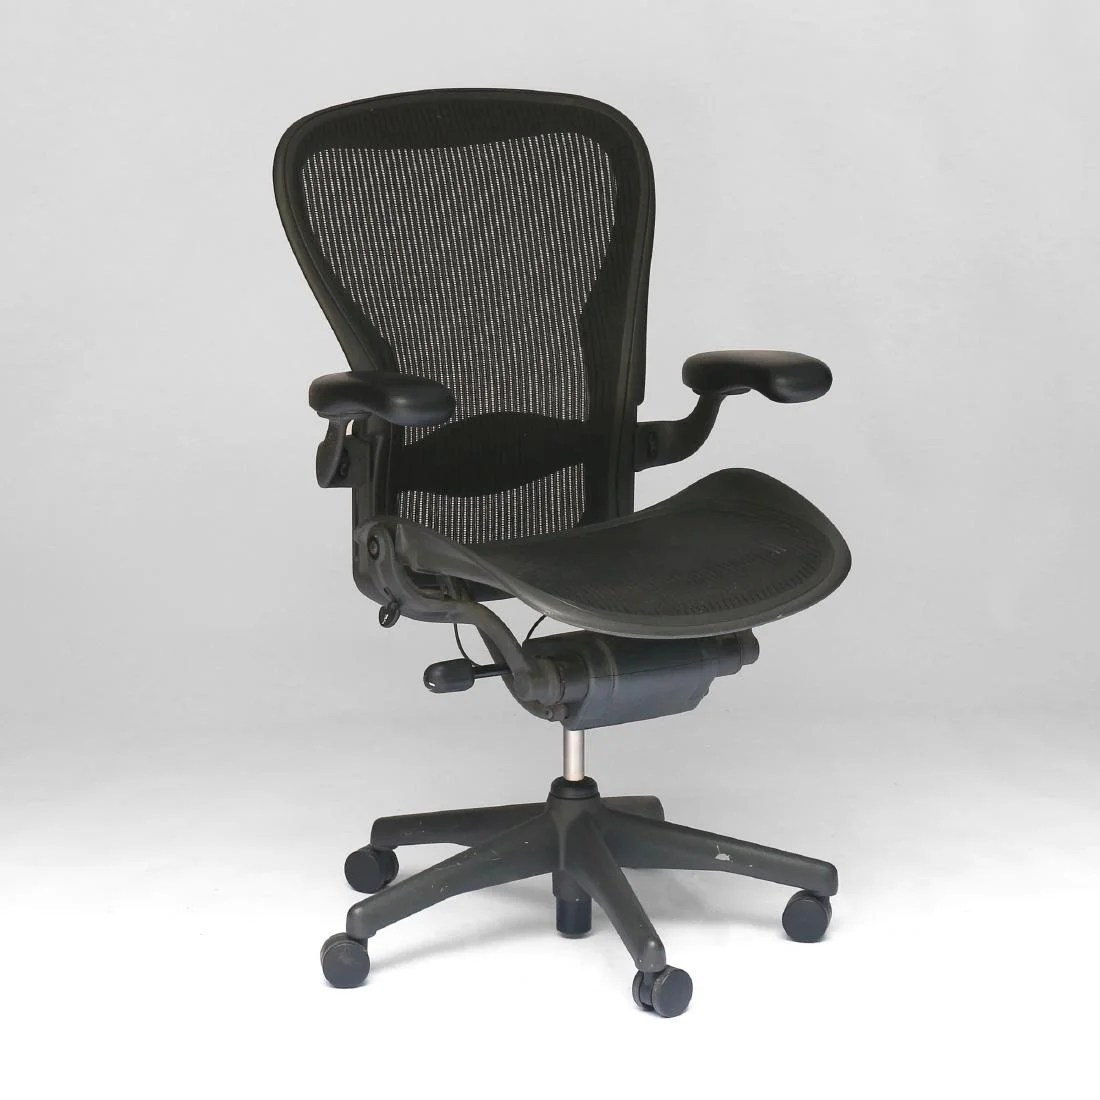 Herman Miller Office Chair Herman Miller Aeron Office Chair On Liveauctioneers